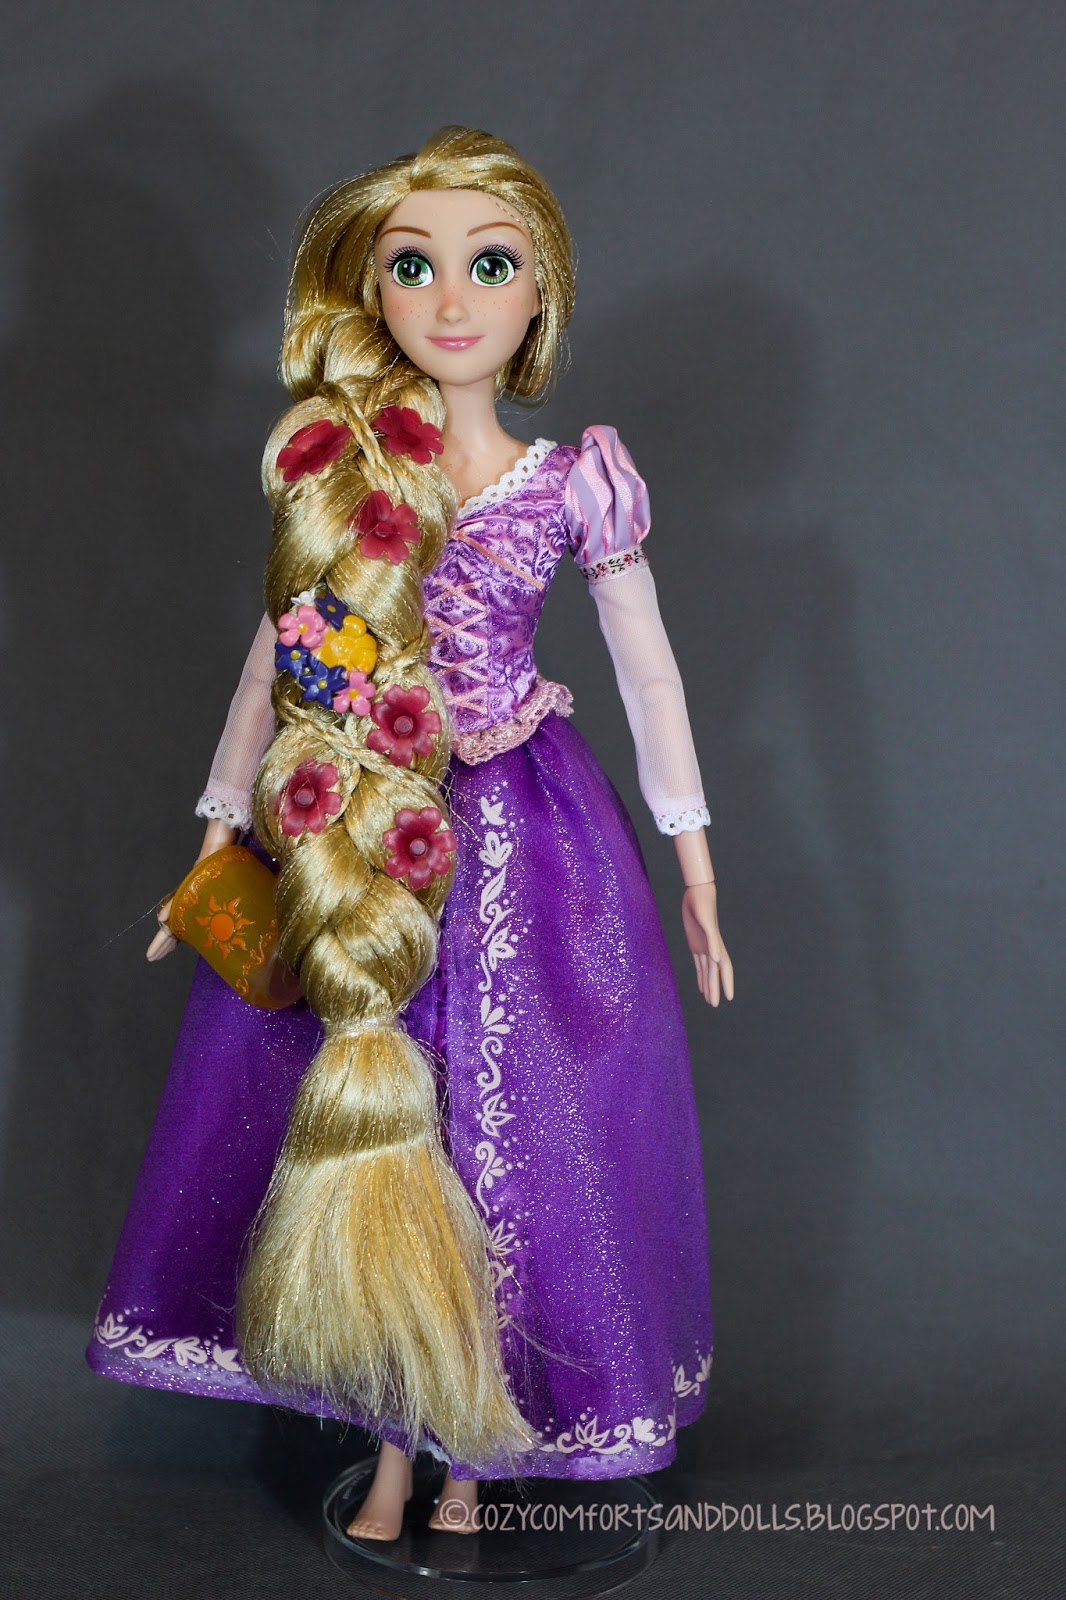 Cozy Comforts and Dolls: Disney's Rapunzel Deluxe Feature ...  Cozy Comforts a...